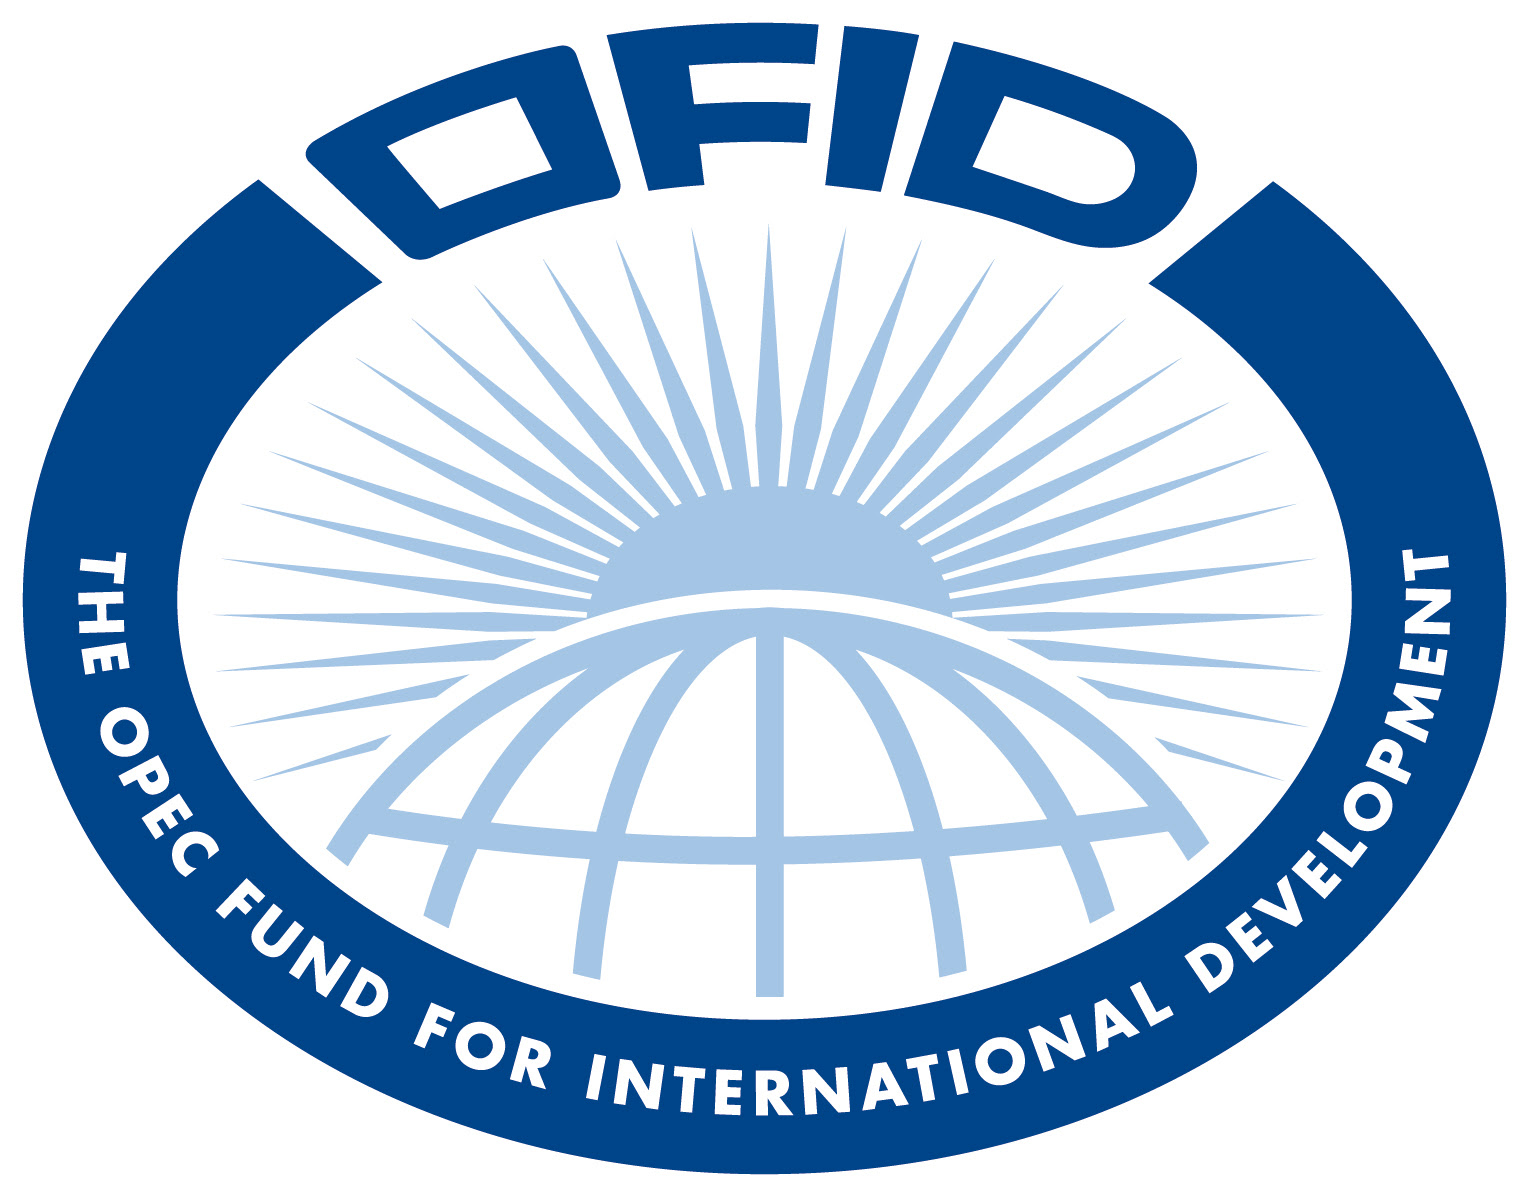 2017 OPEC Fund for International Development (OFID) Graduate Internship Recruitment